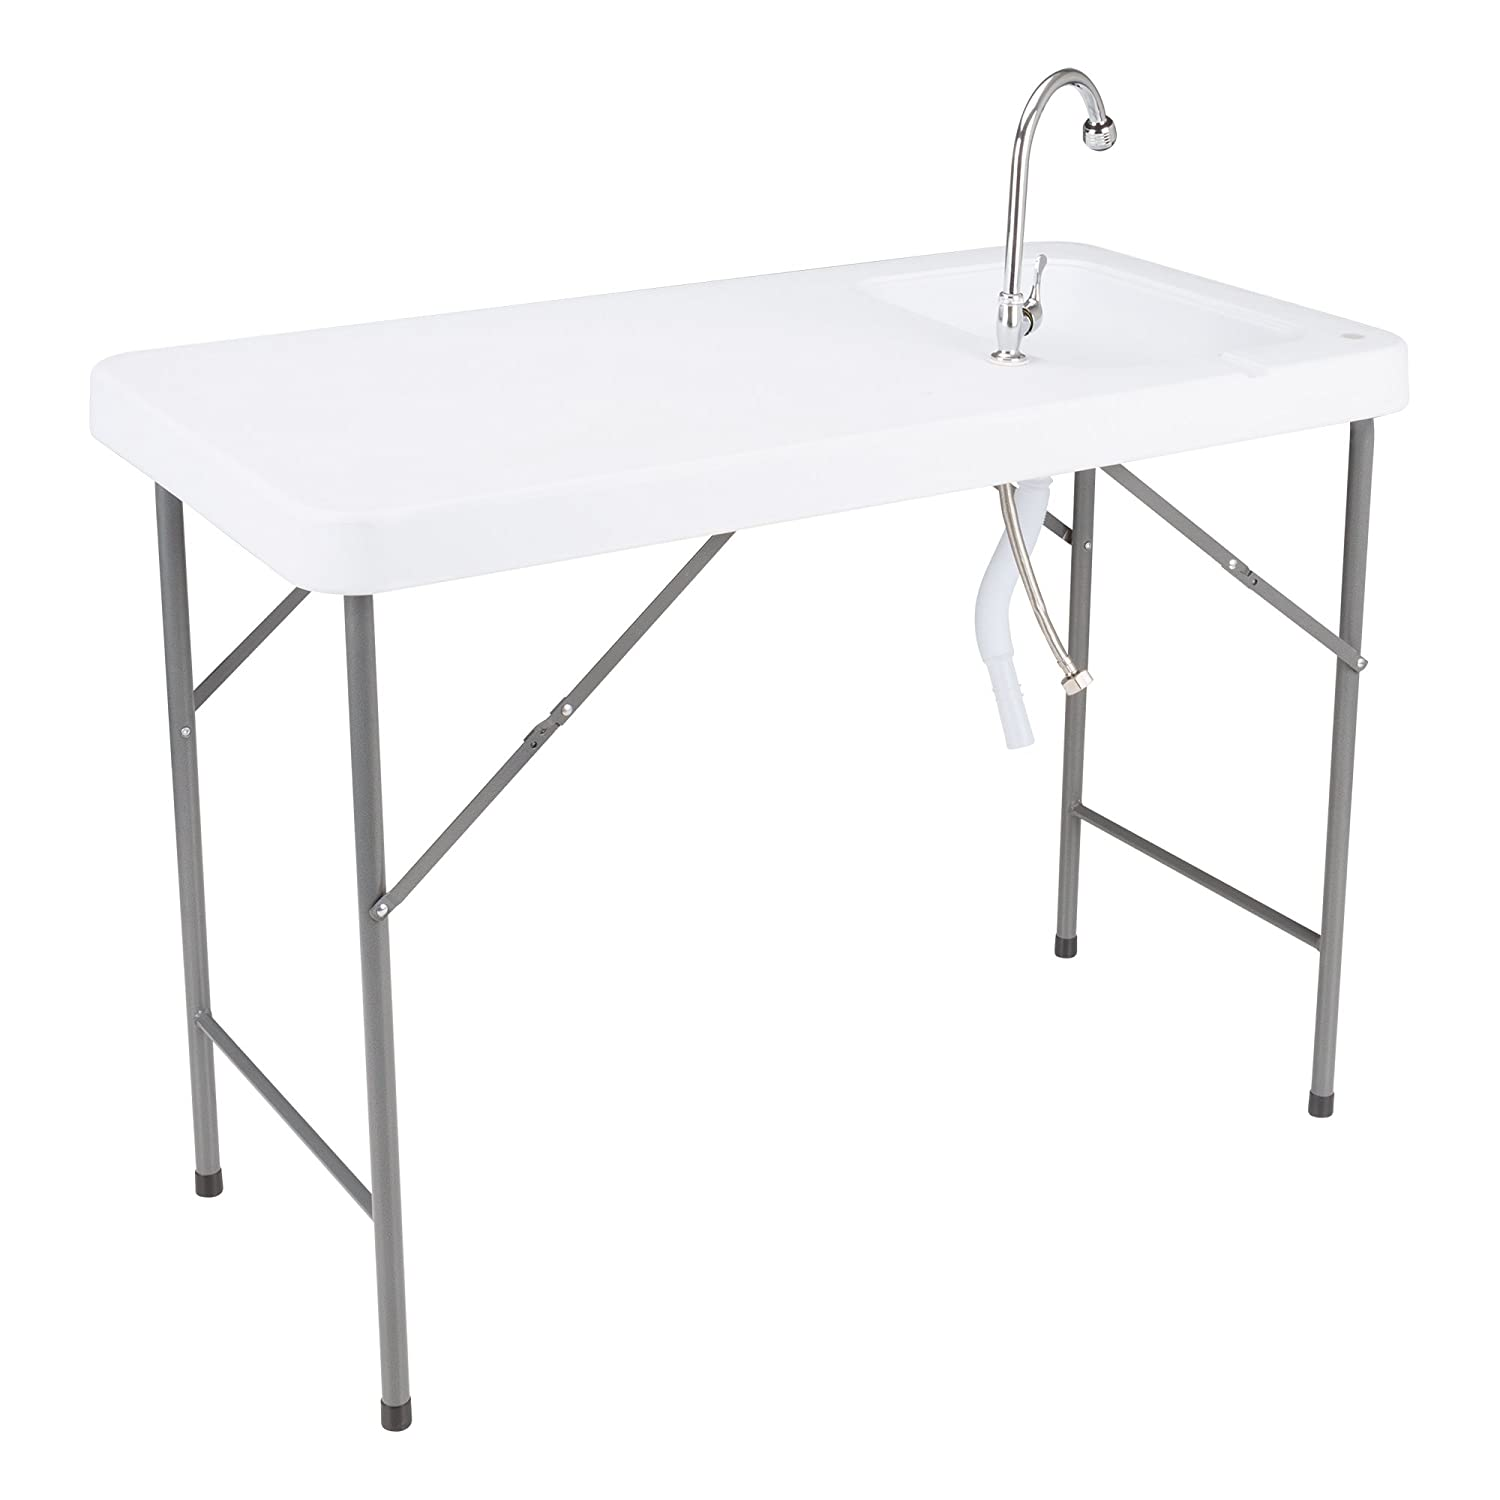 Best Fish Cleaning Tables 2021 Reviews 10